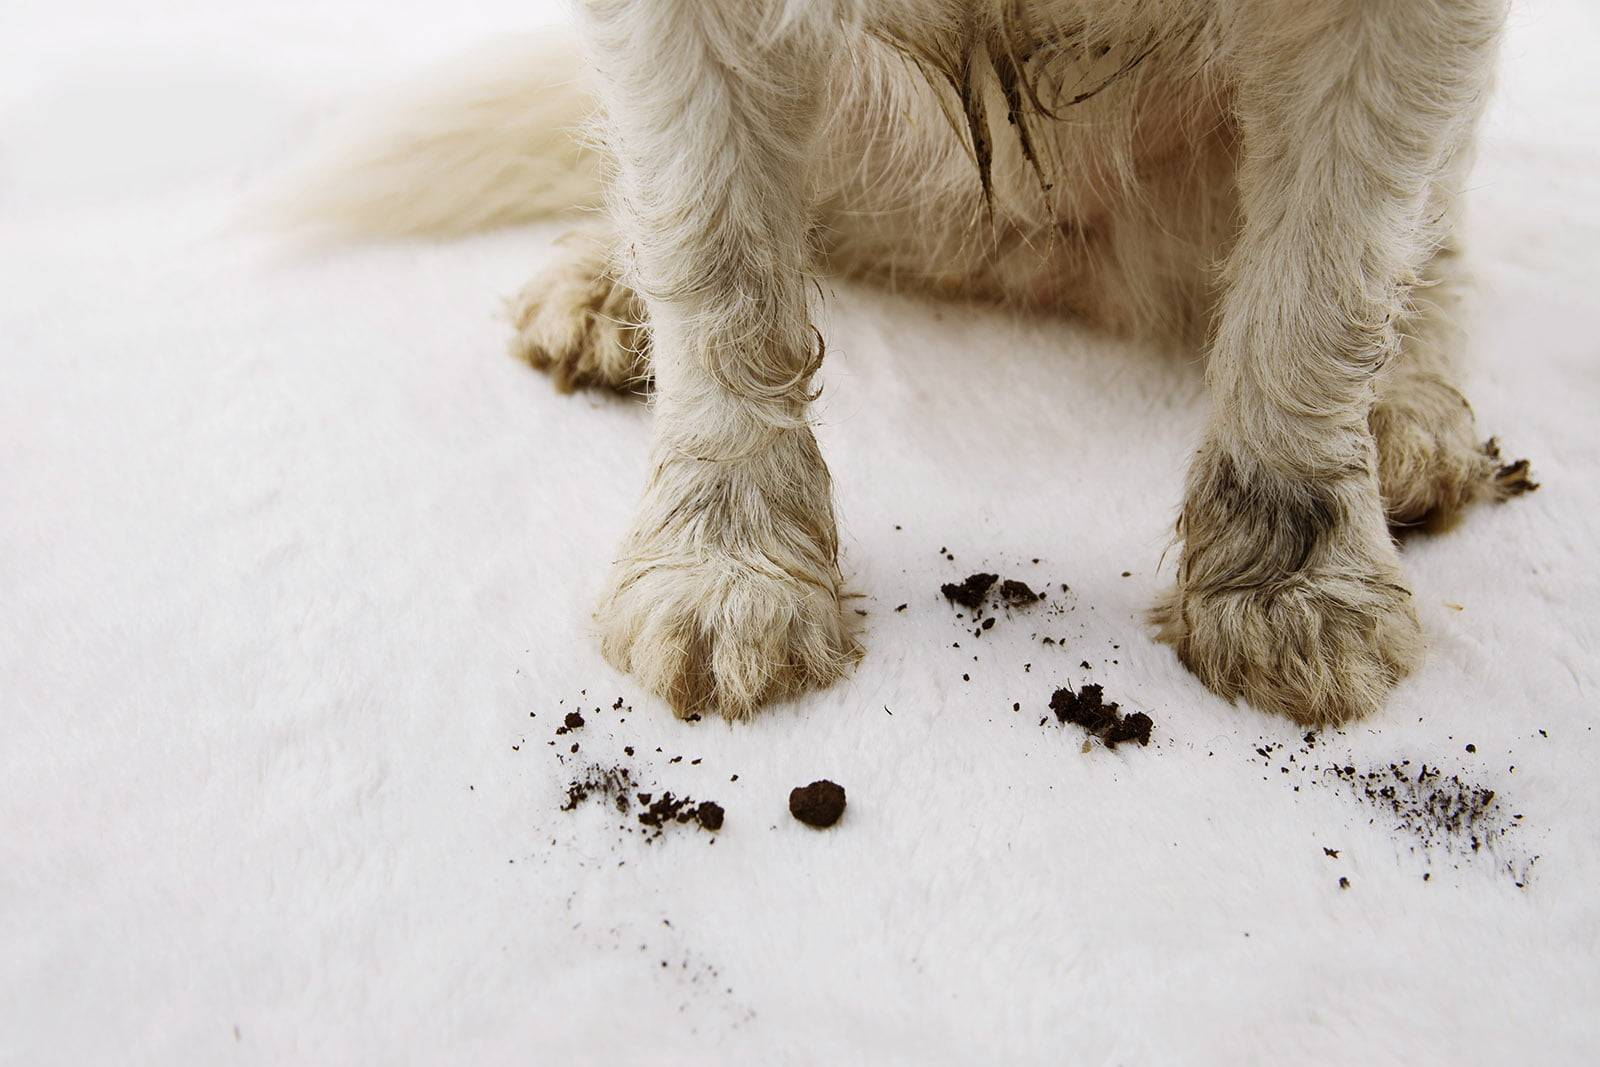 Close-up of dirty and muddy dog on carpet at home